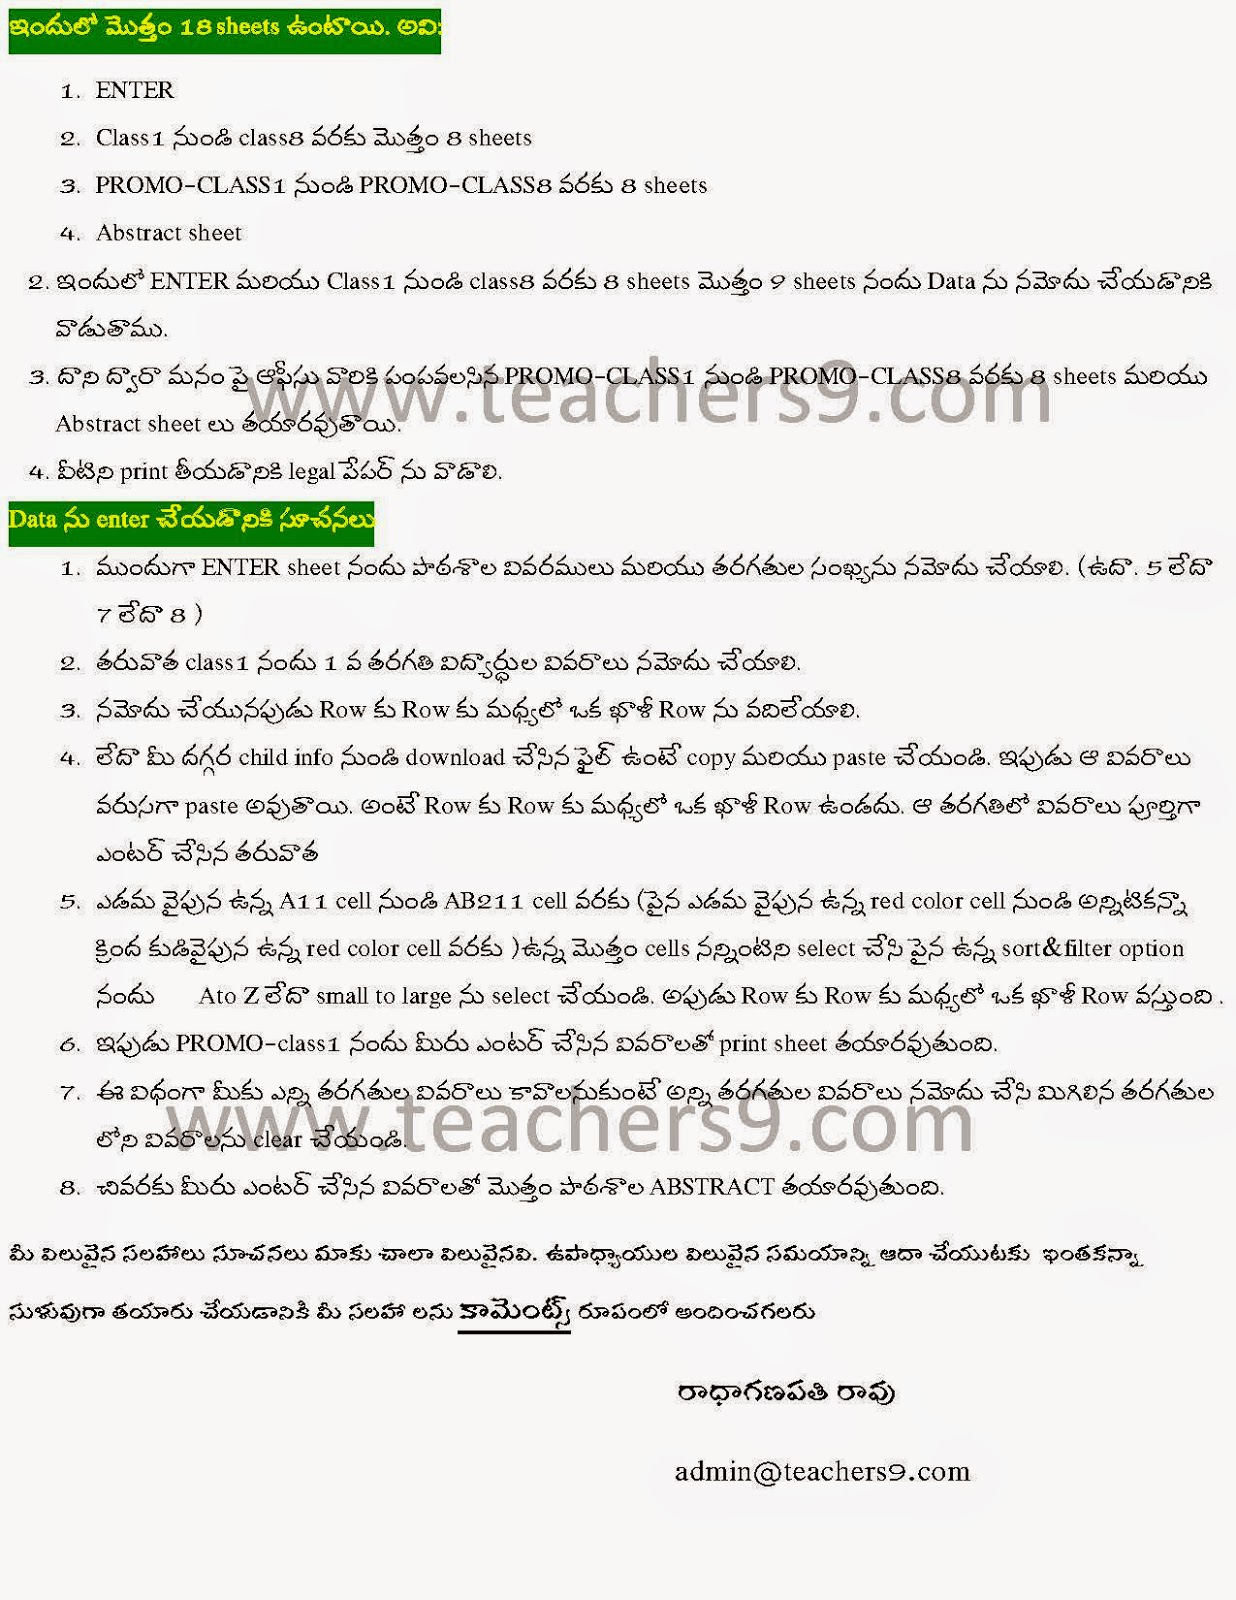 Promotion list software 2014-15 instructions